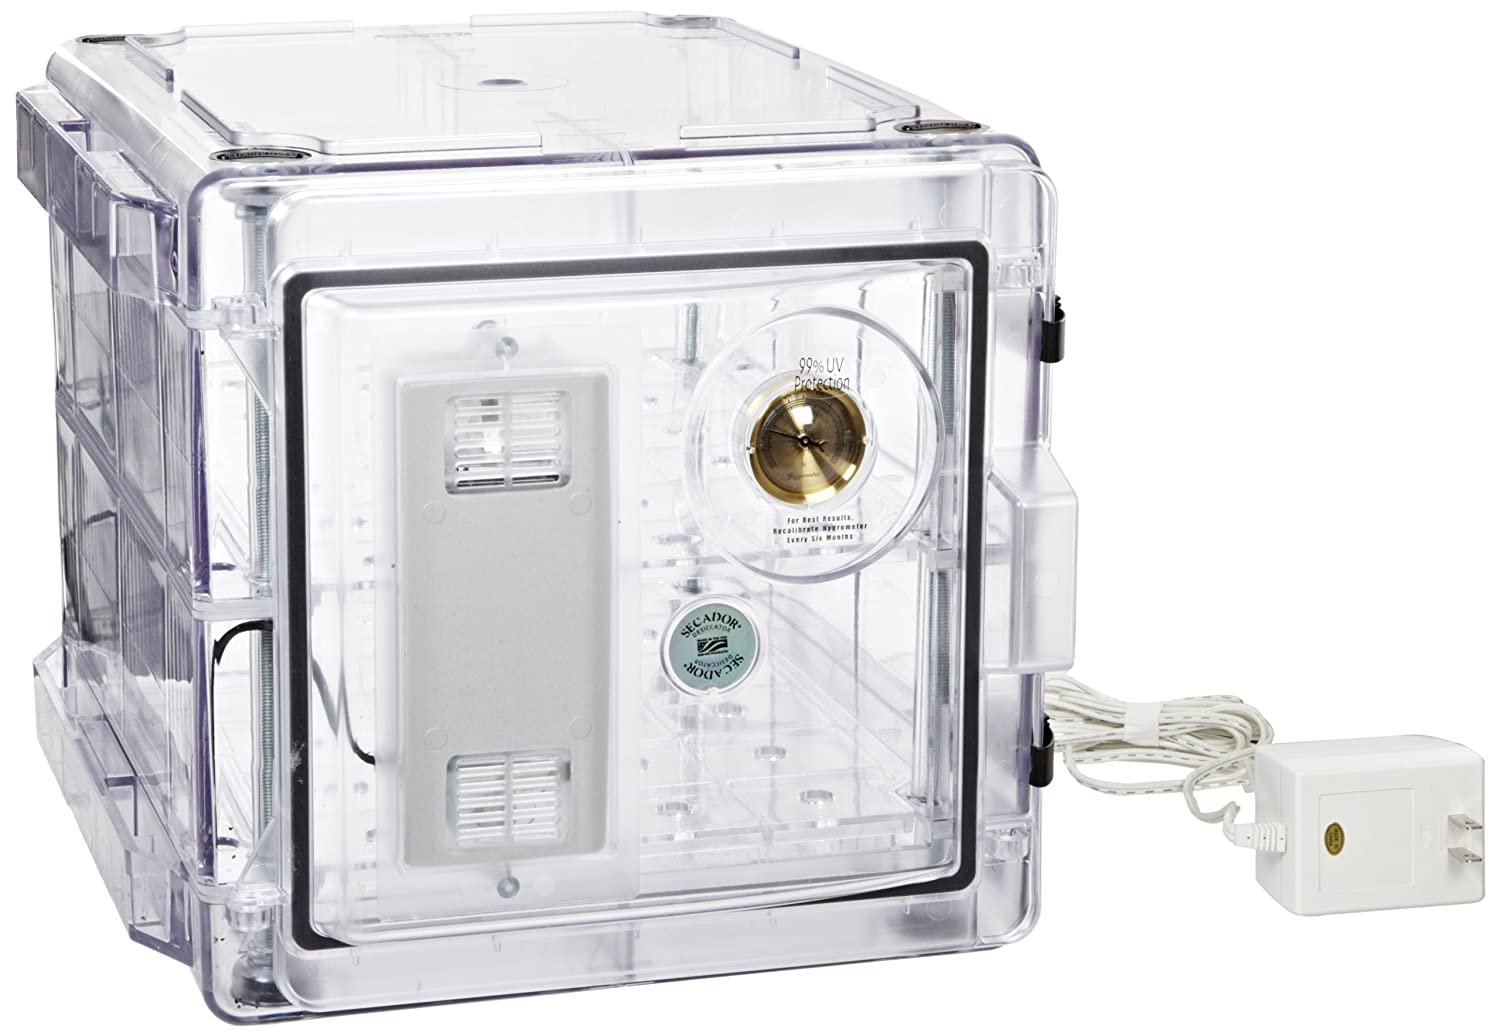 Bel-Art Secador Clear 2.0 Auto-Desiccator Cabinet; 100V, 1.2 cu. ft. (F42072-1100): Science Lab Desiccator Accessories: Amazon.com: Office Products